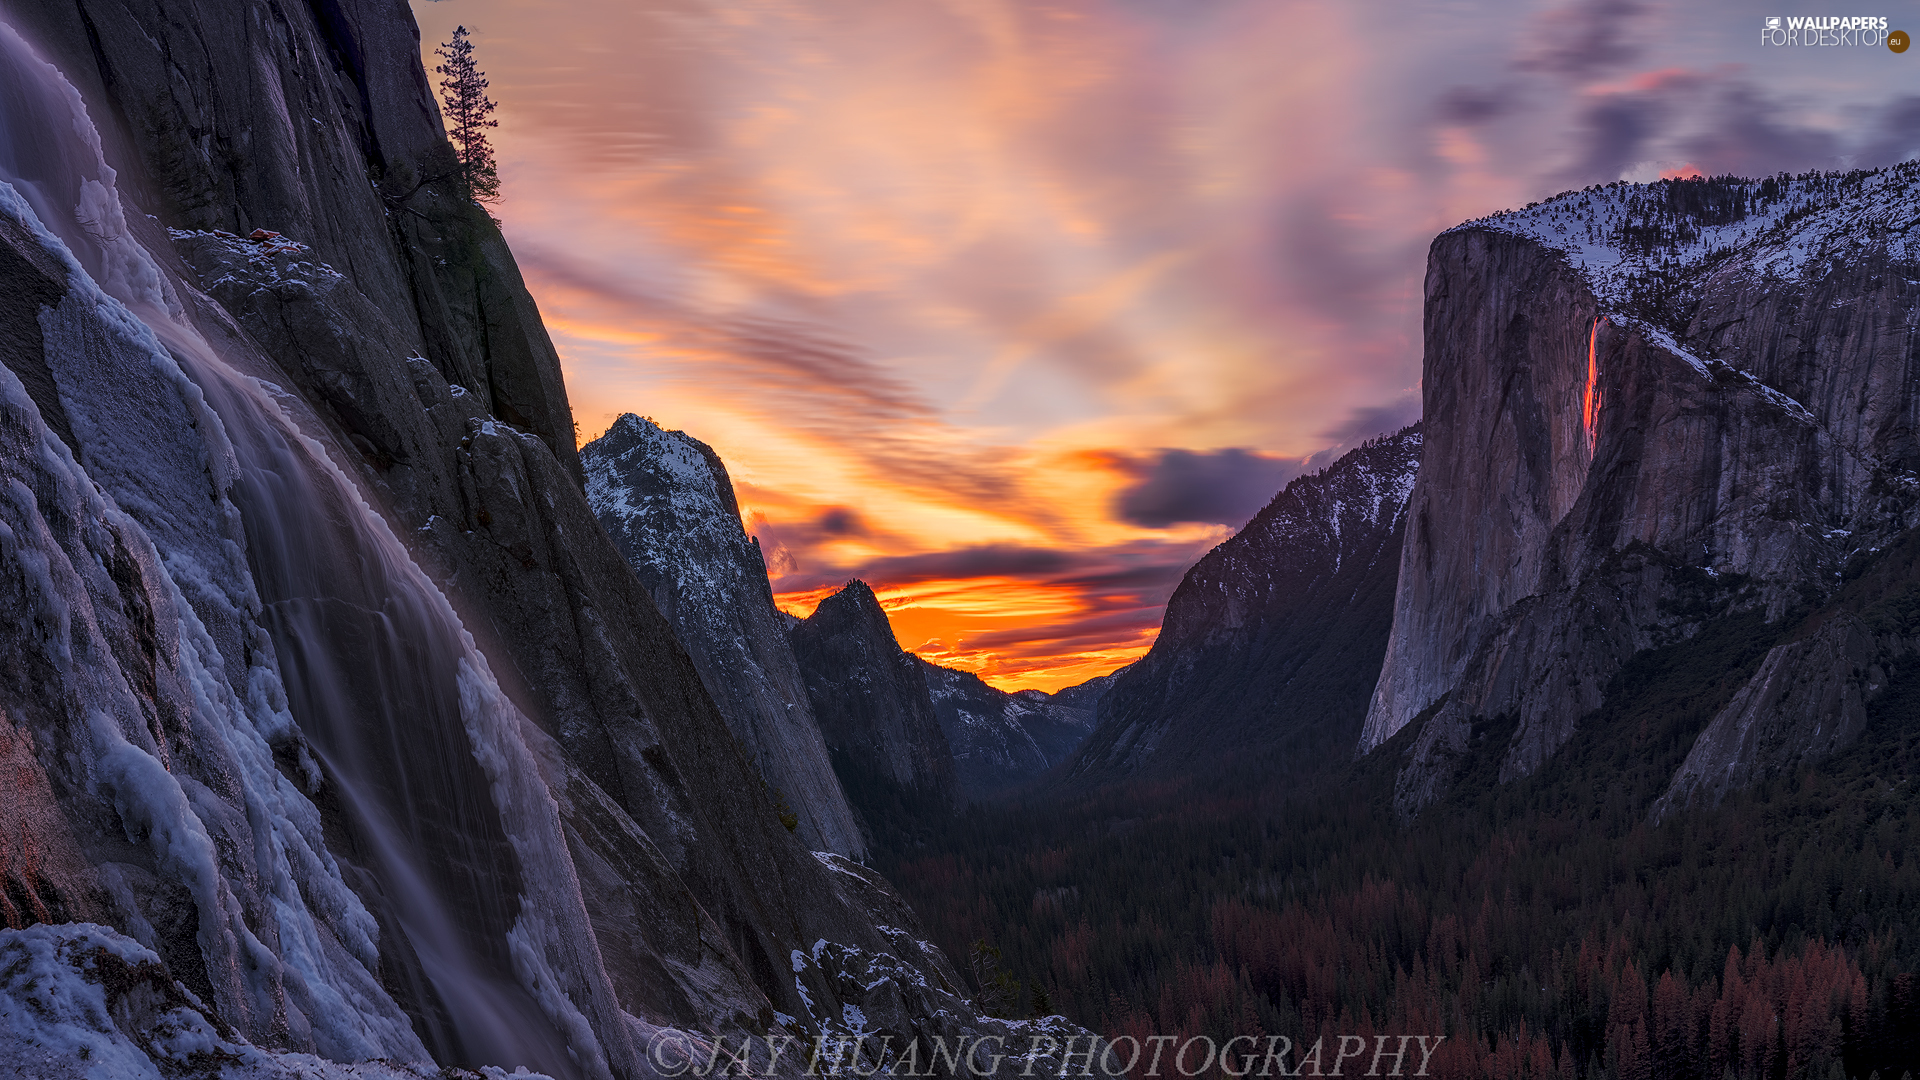 forest, Yosemite National Park, State of California, The United States, Great Sunsets, Mountains